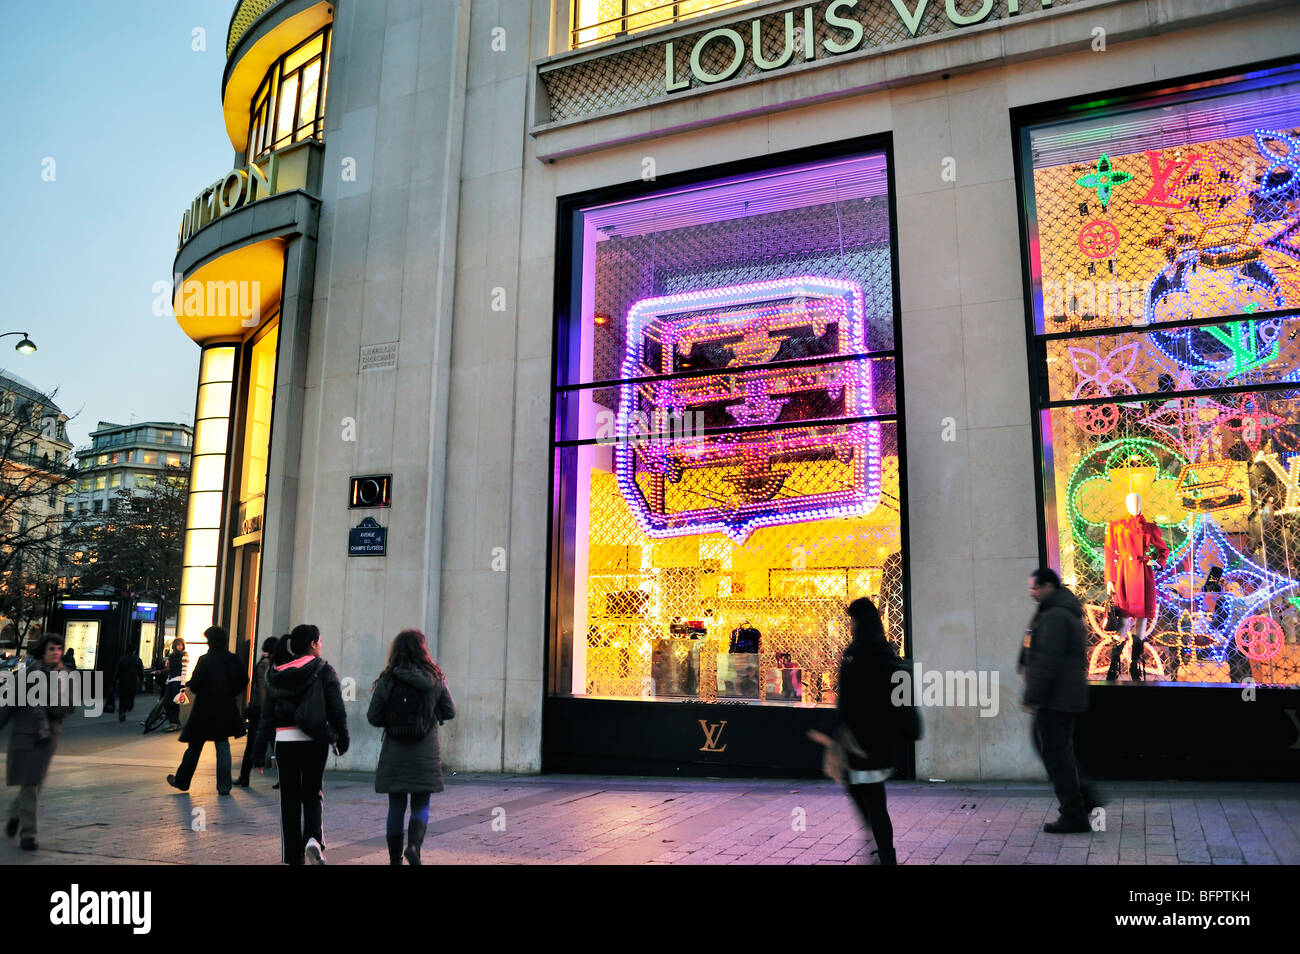 Baby clothing stores in paris france